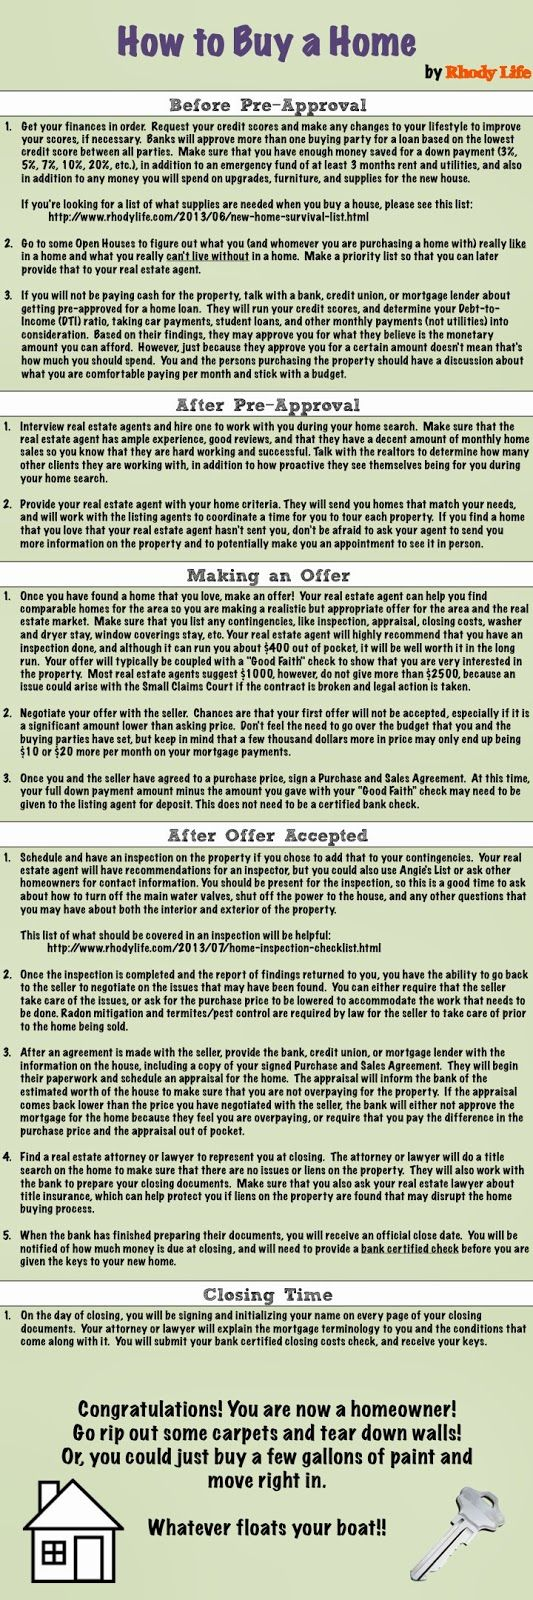 How to Buy a House - great post. Selling or Buying in IL? Contact Maribeth Tzavras REMAX 630.624.2014